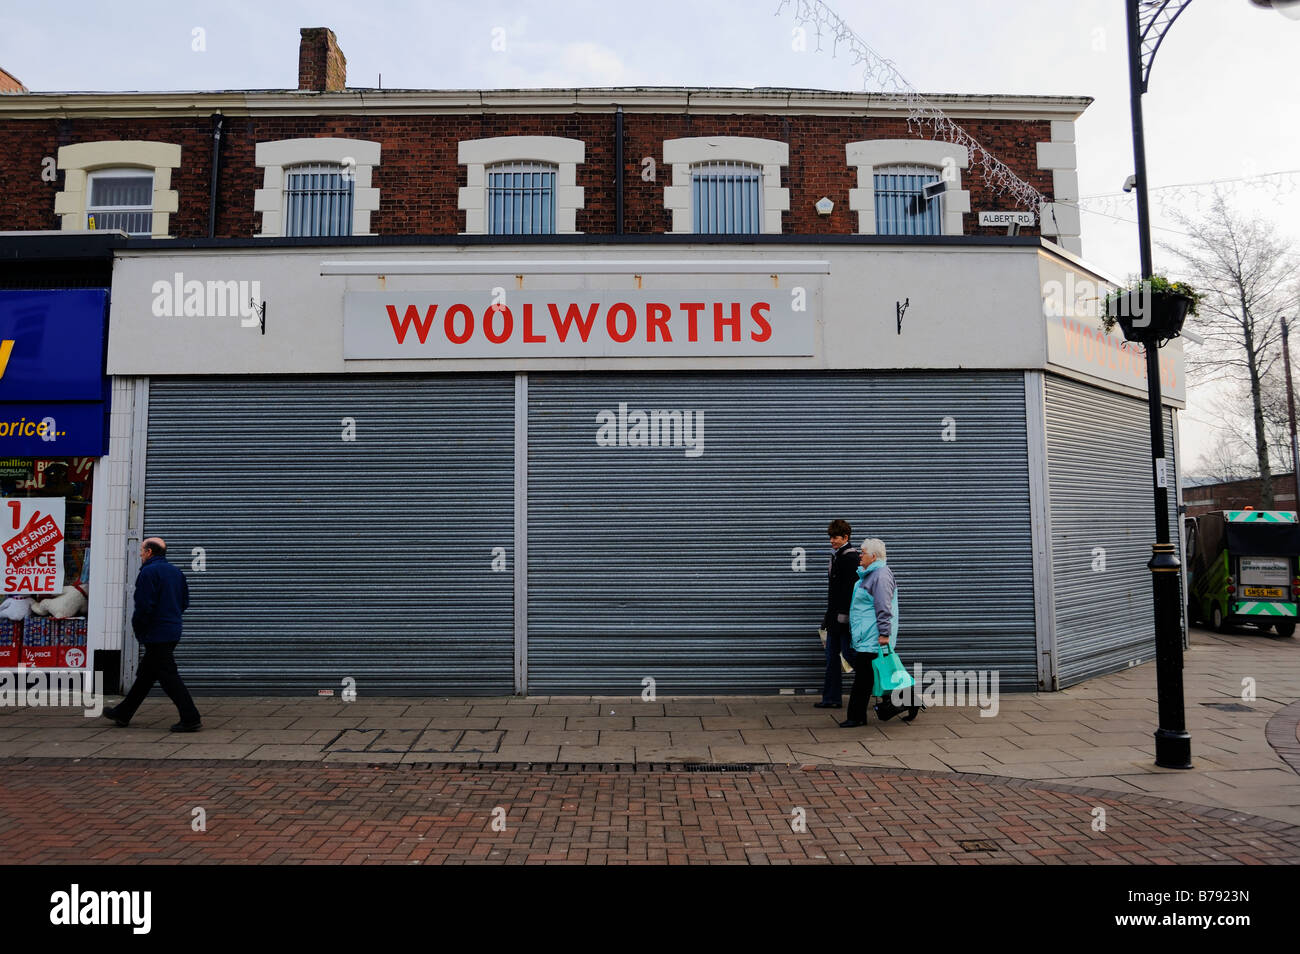 Woolworths in Widnes, Cheshire. Closed with roller shutters down - Stock Image